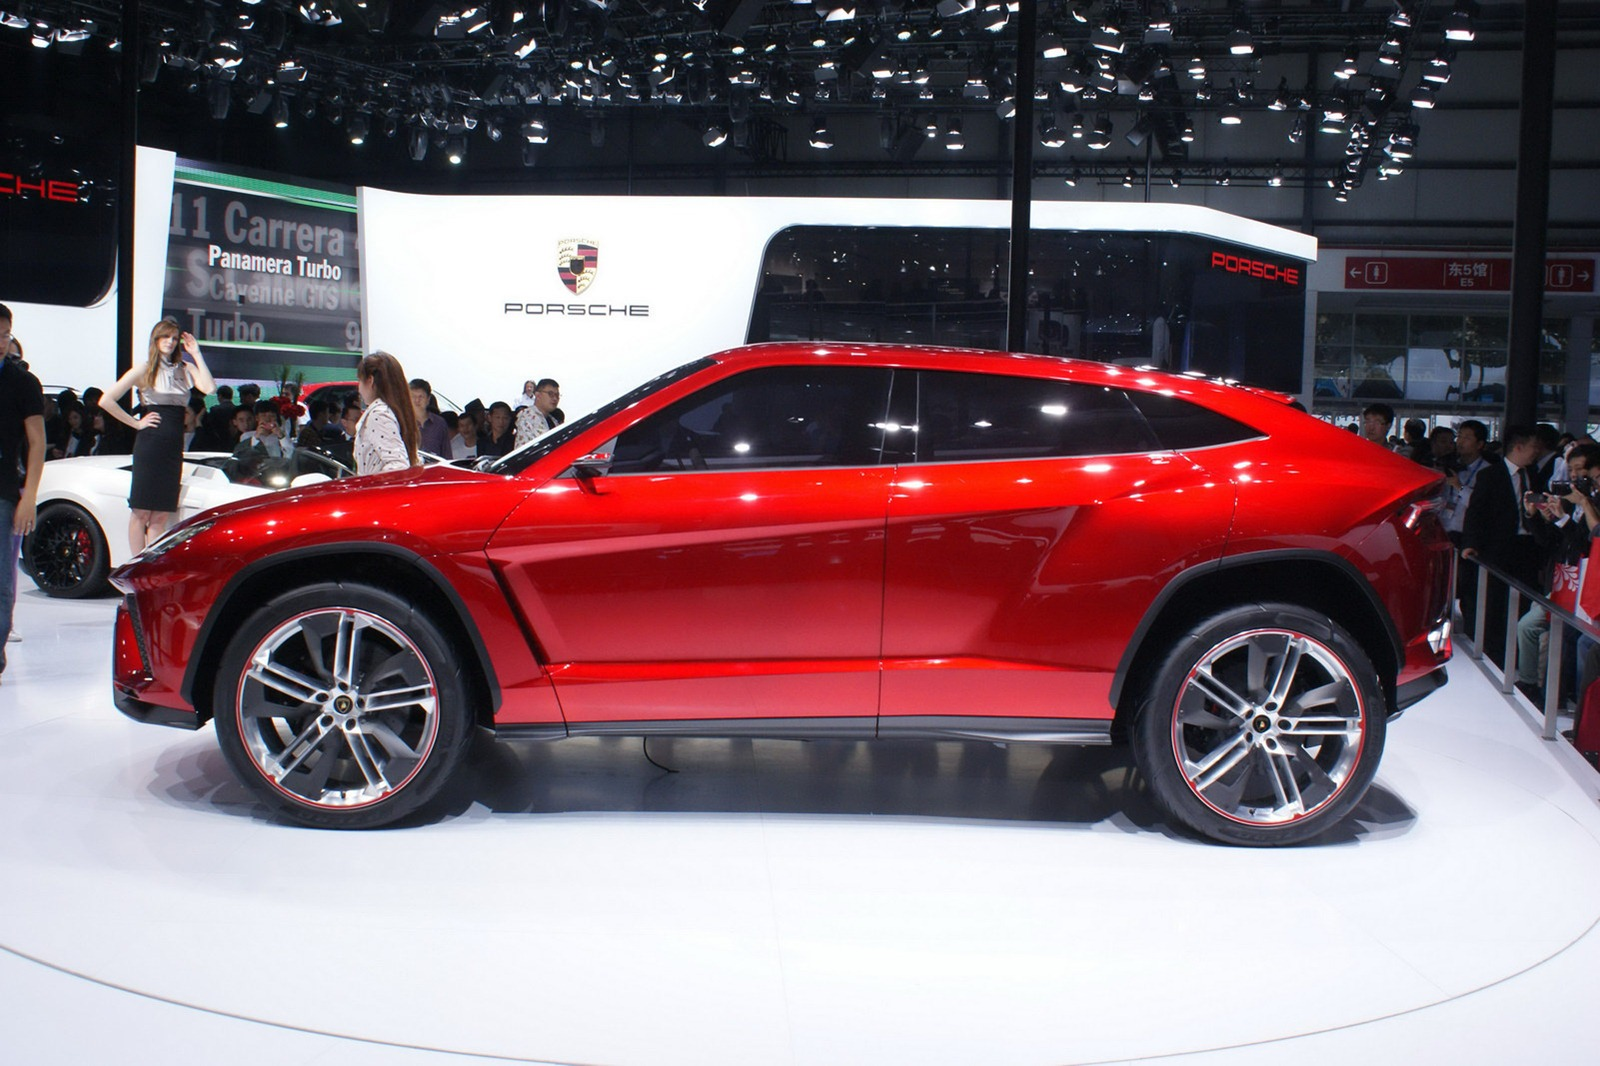 photo gallery - Lamborghini Urus Top Speed